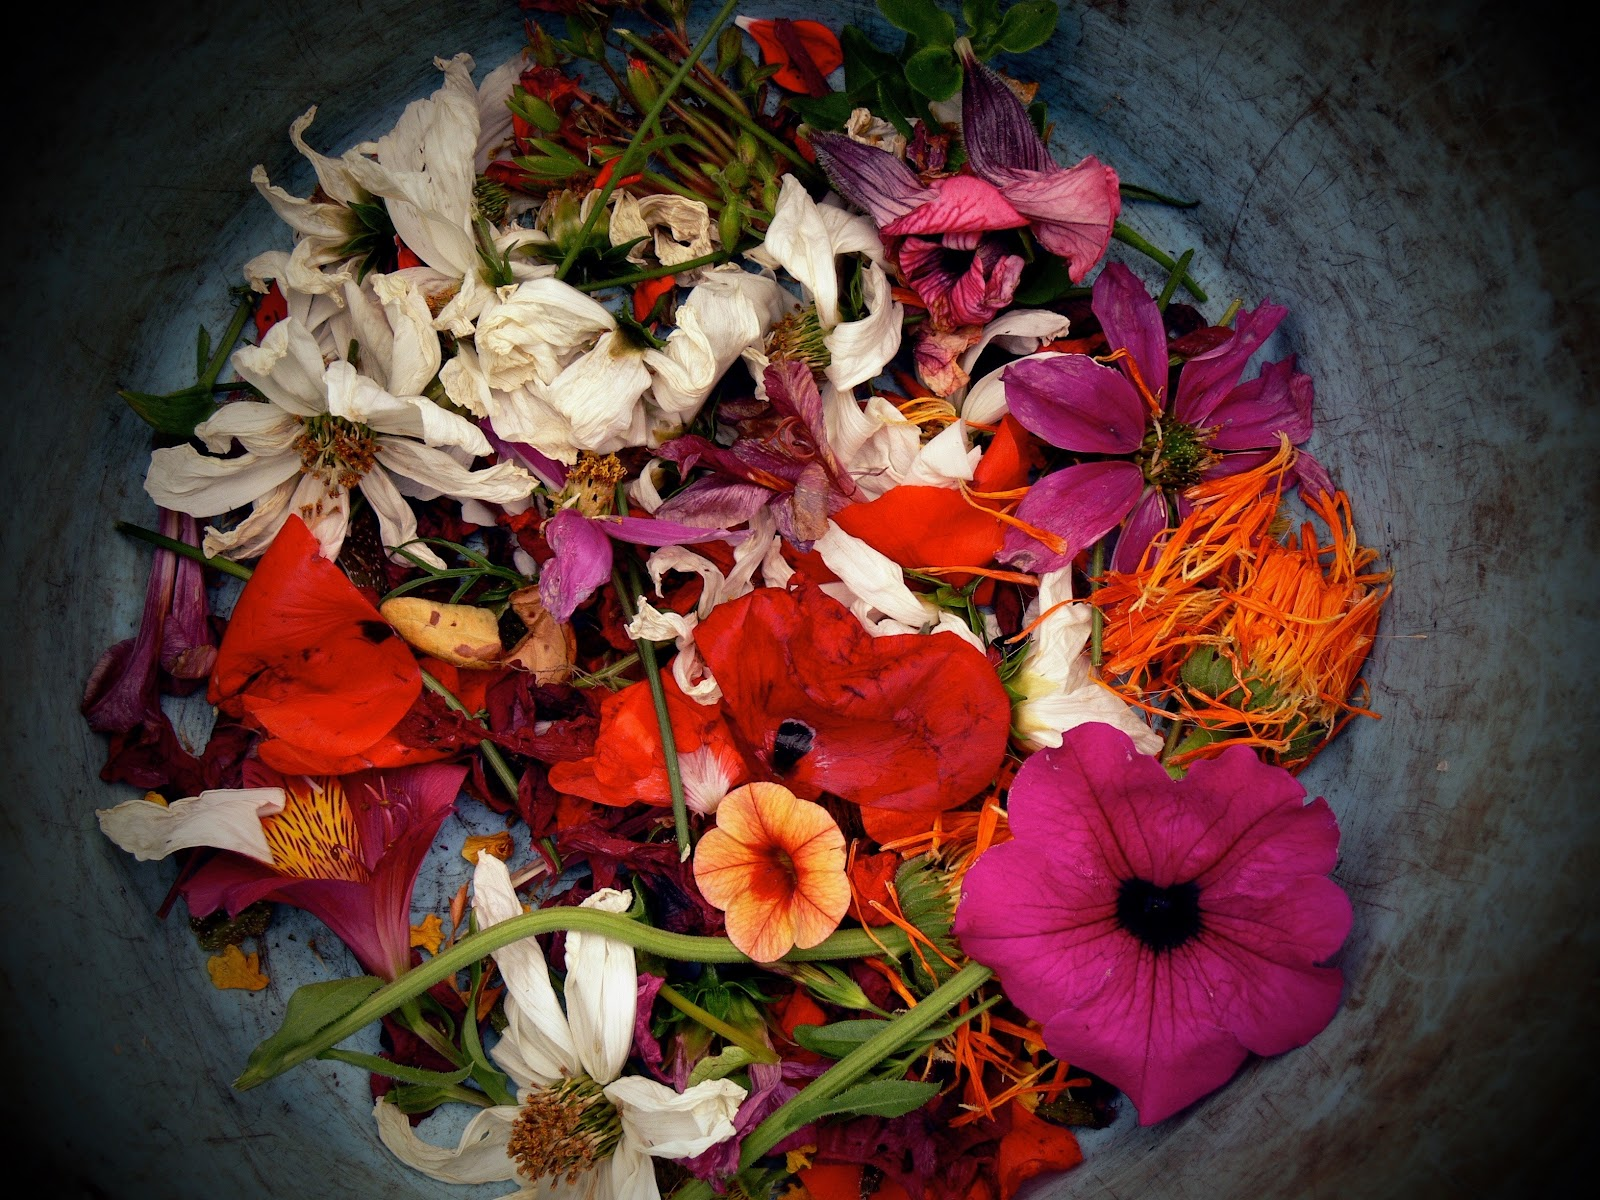 photo of a bowl of cut flower heads multiple types of flowers